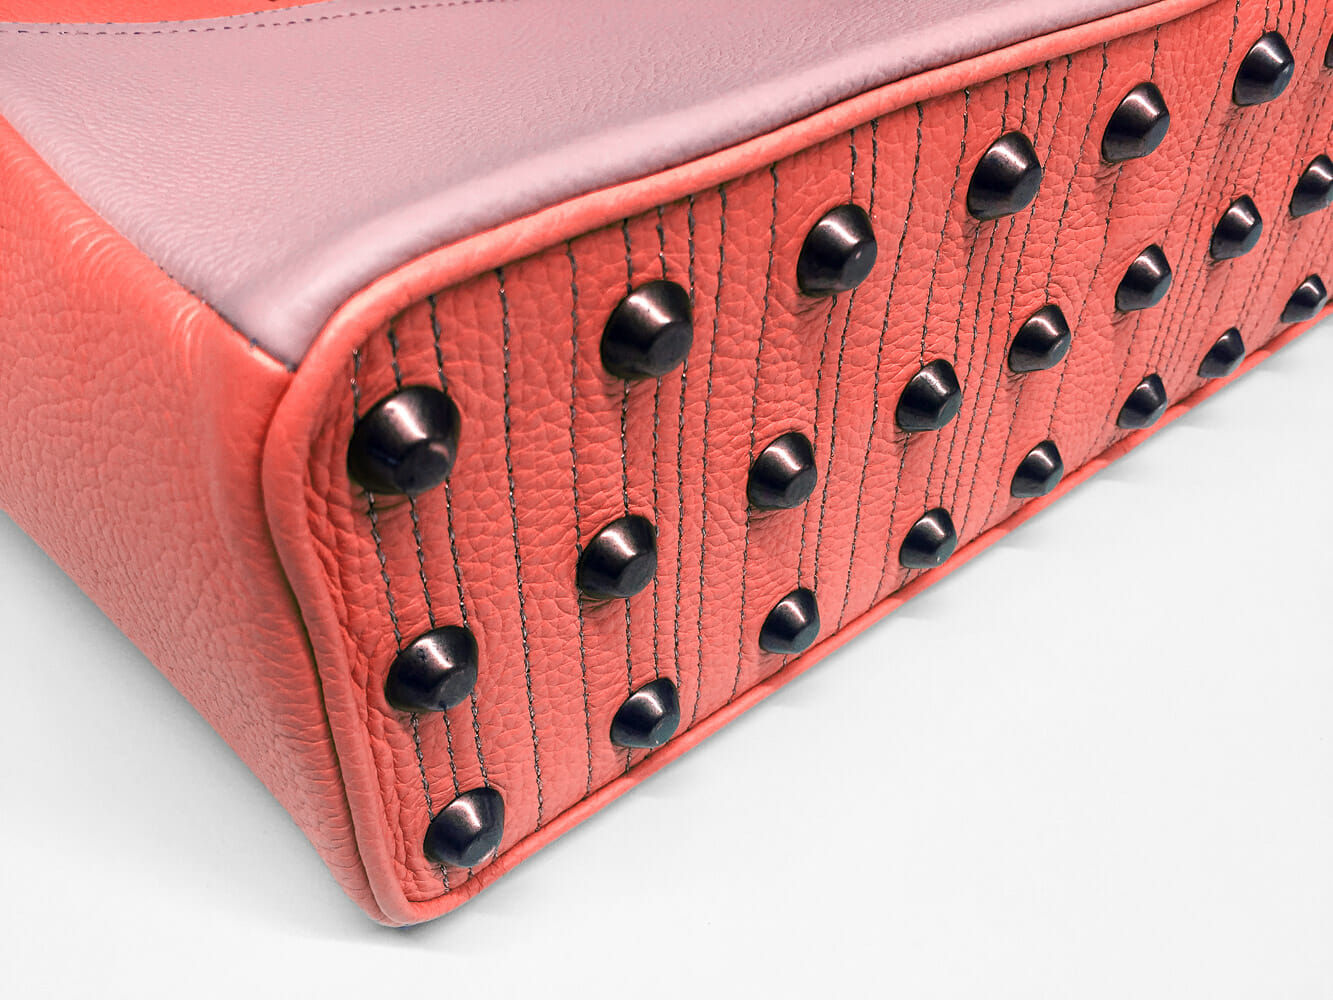 Luc8k bespoke Shopper showing studs at bottom